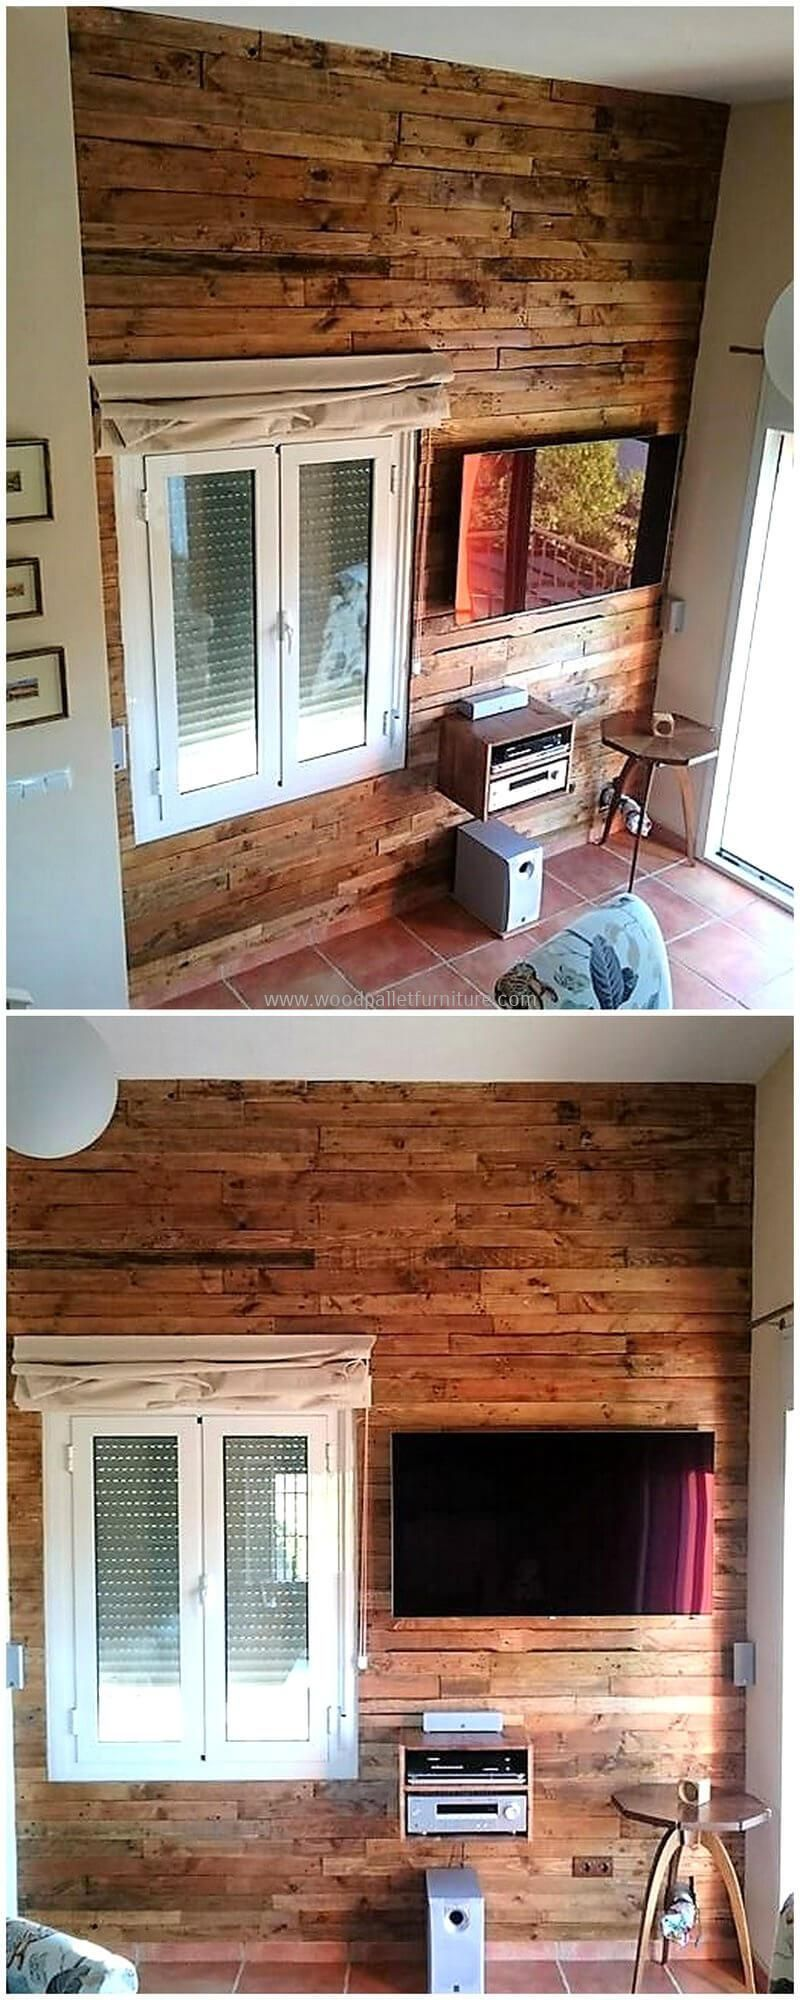 Great Ideas For Reusing or Recycling Wood